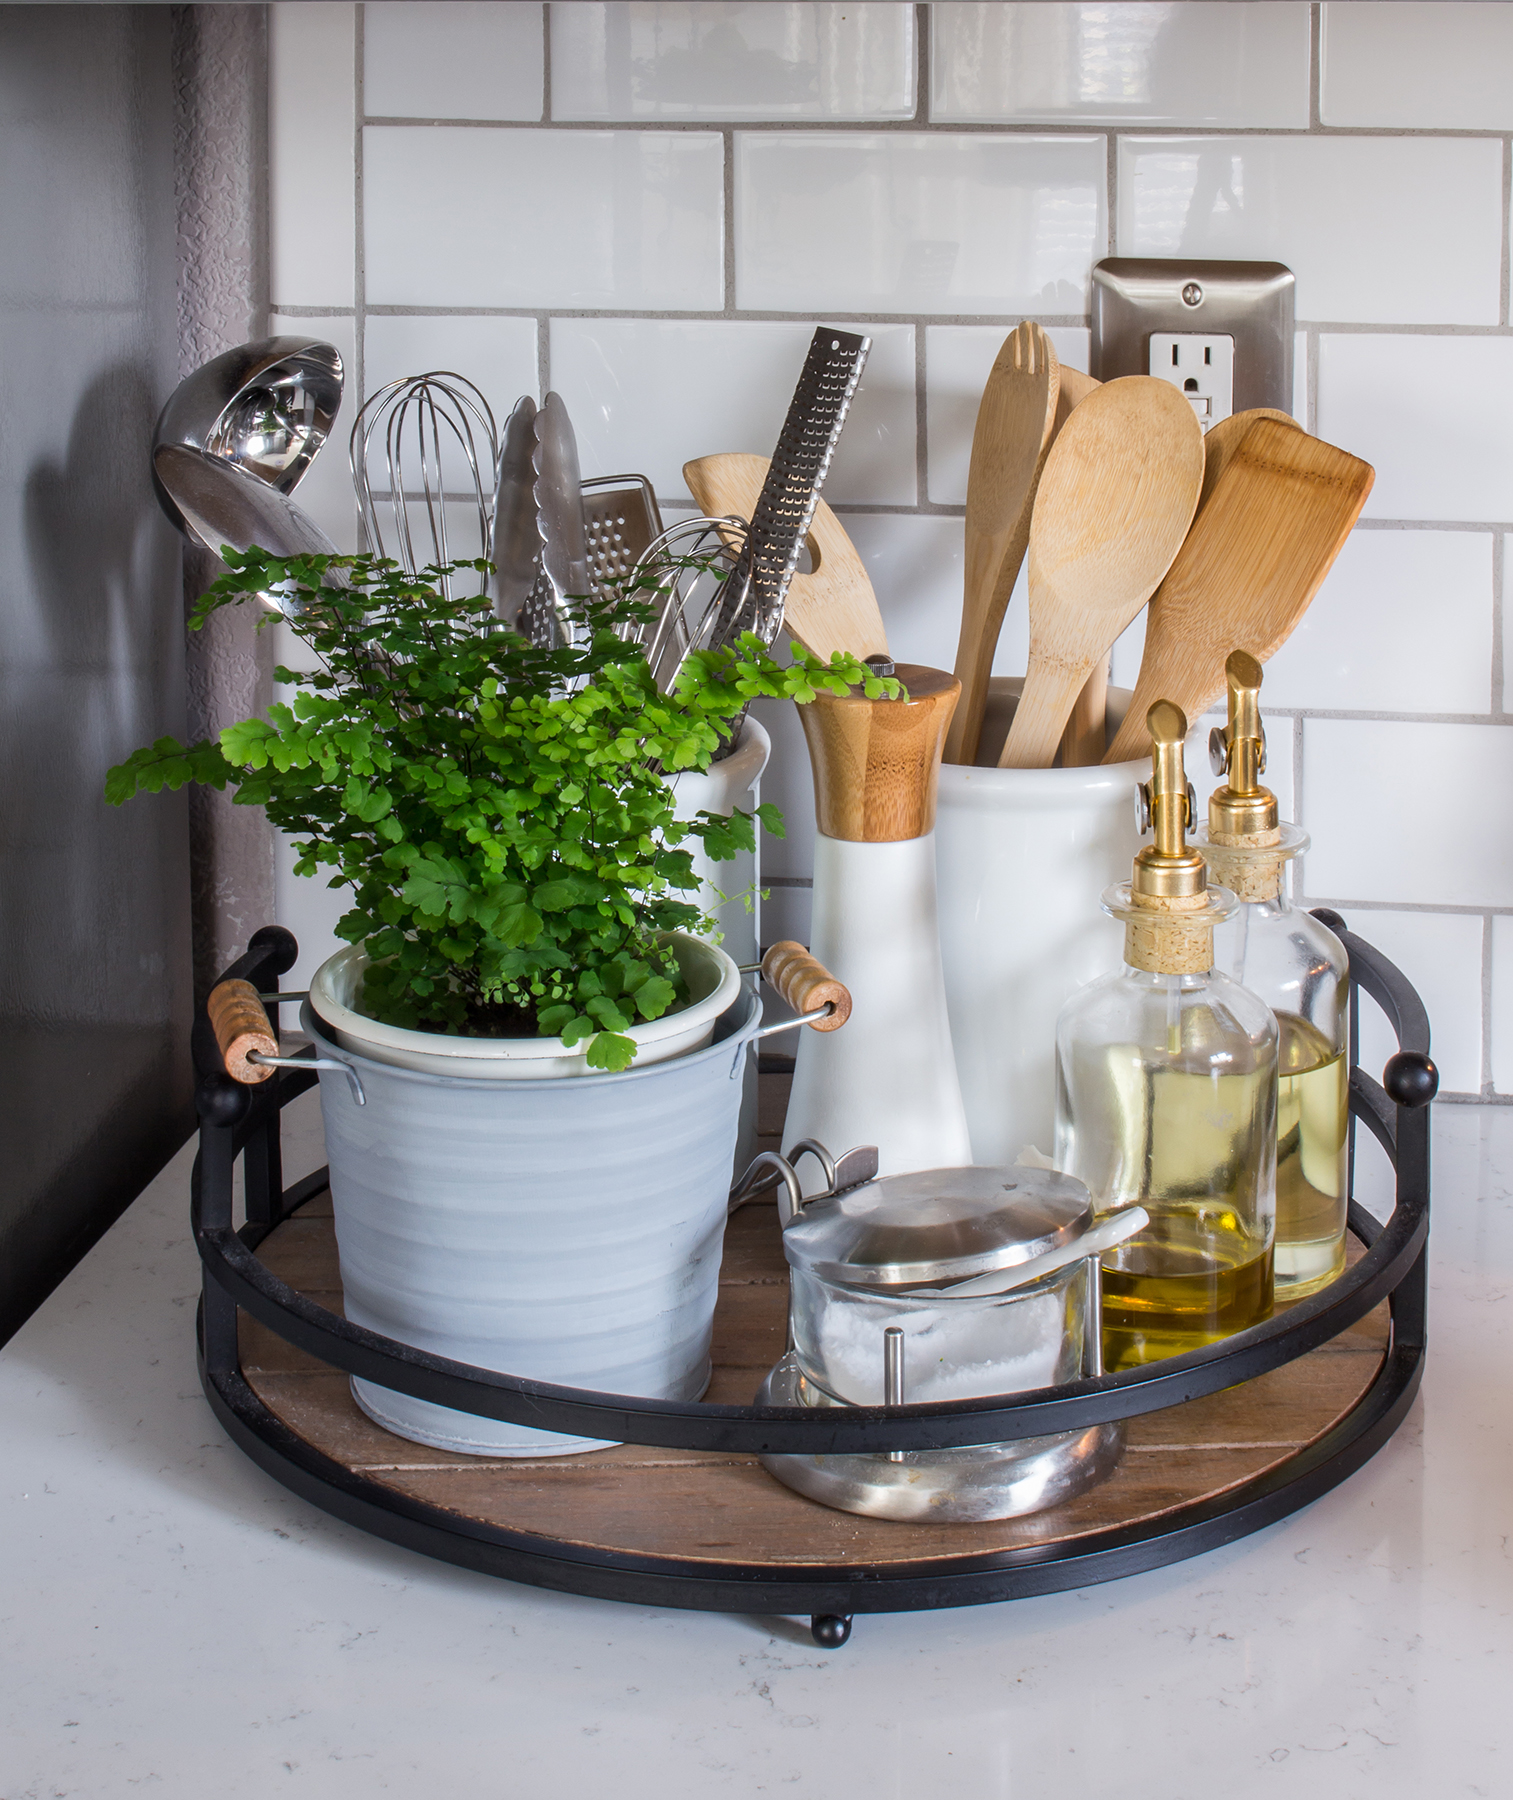 10 Brilliant Ways to Maximize Your Kitchen Storage